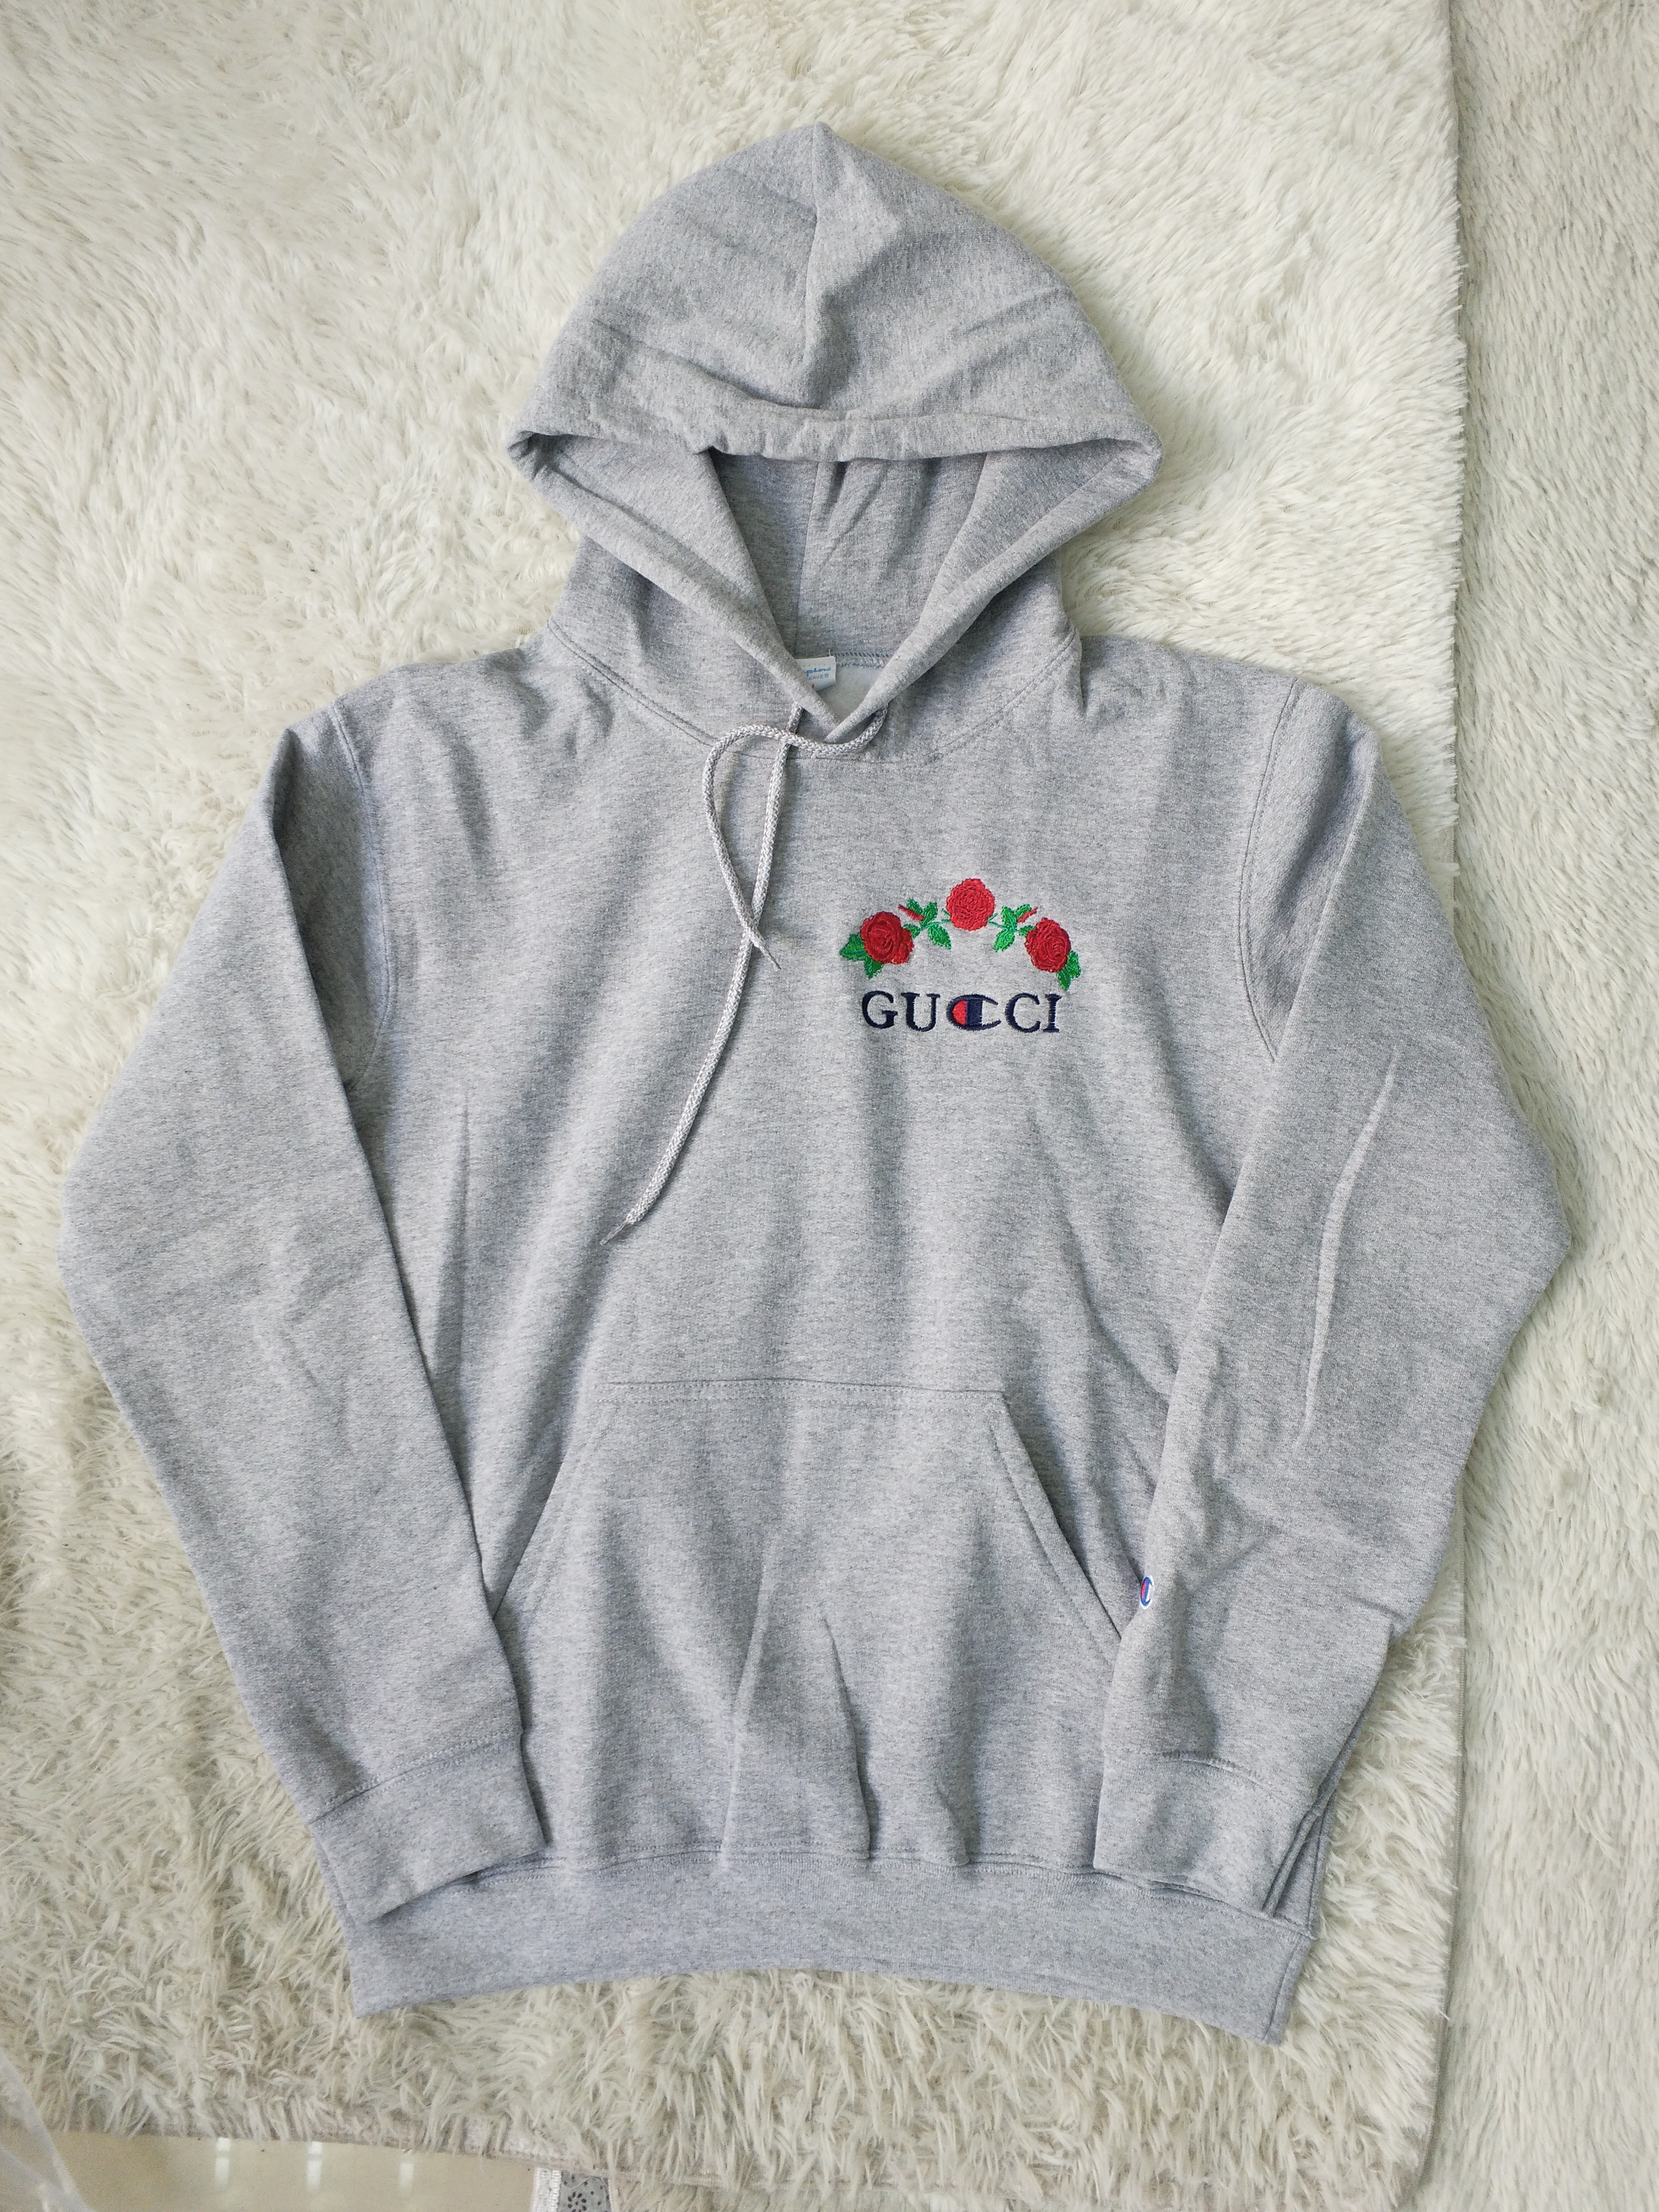 6c57b7c25a2 Gucci Gucci x Champion Rose Hoodie custom bootleg Avanope Size m ...